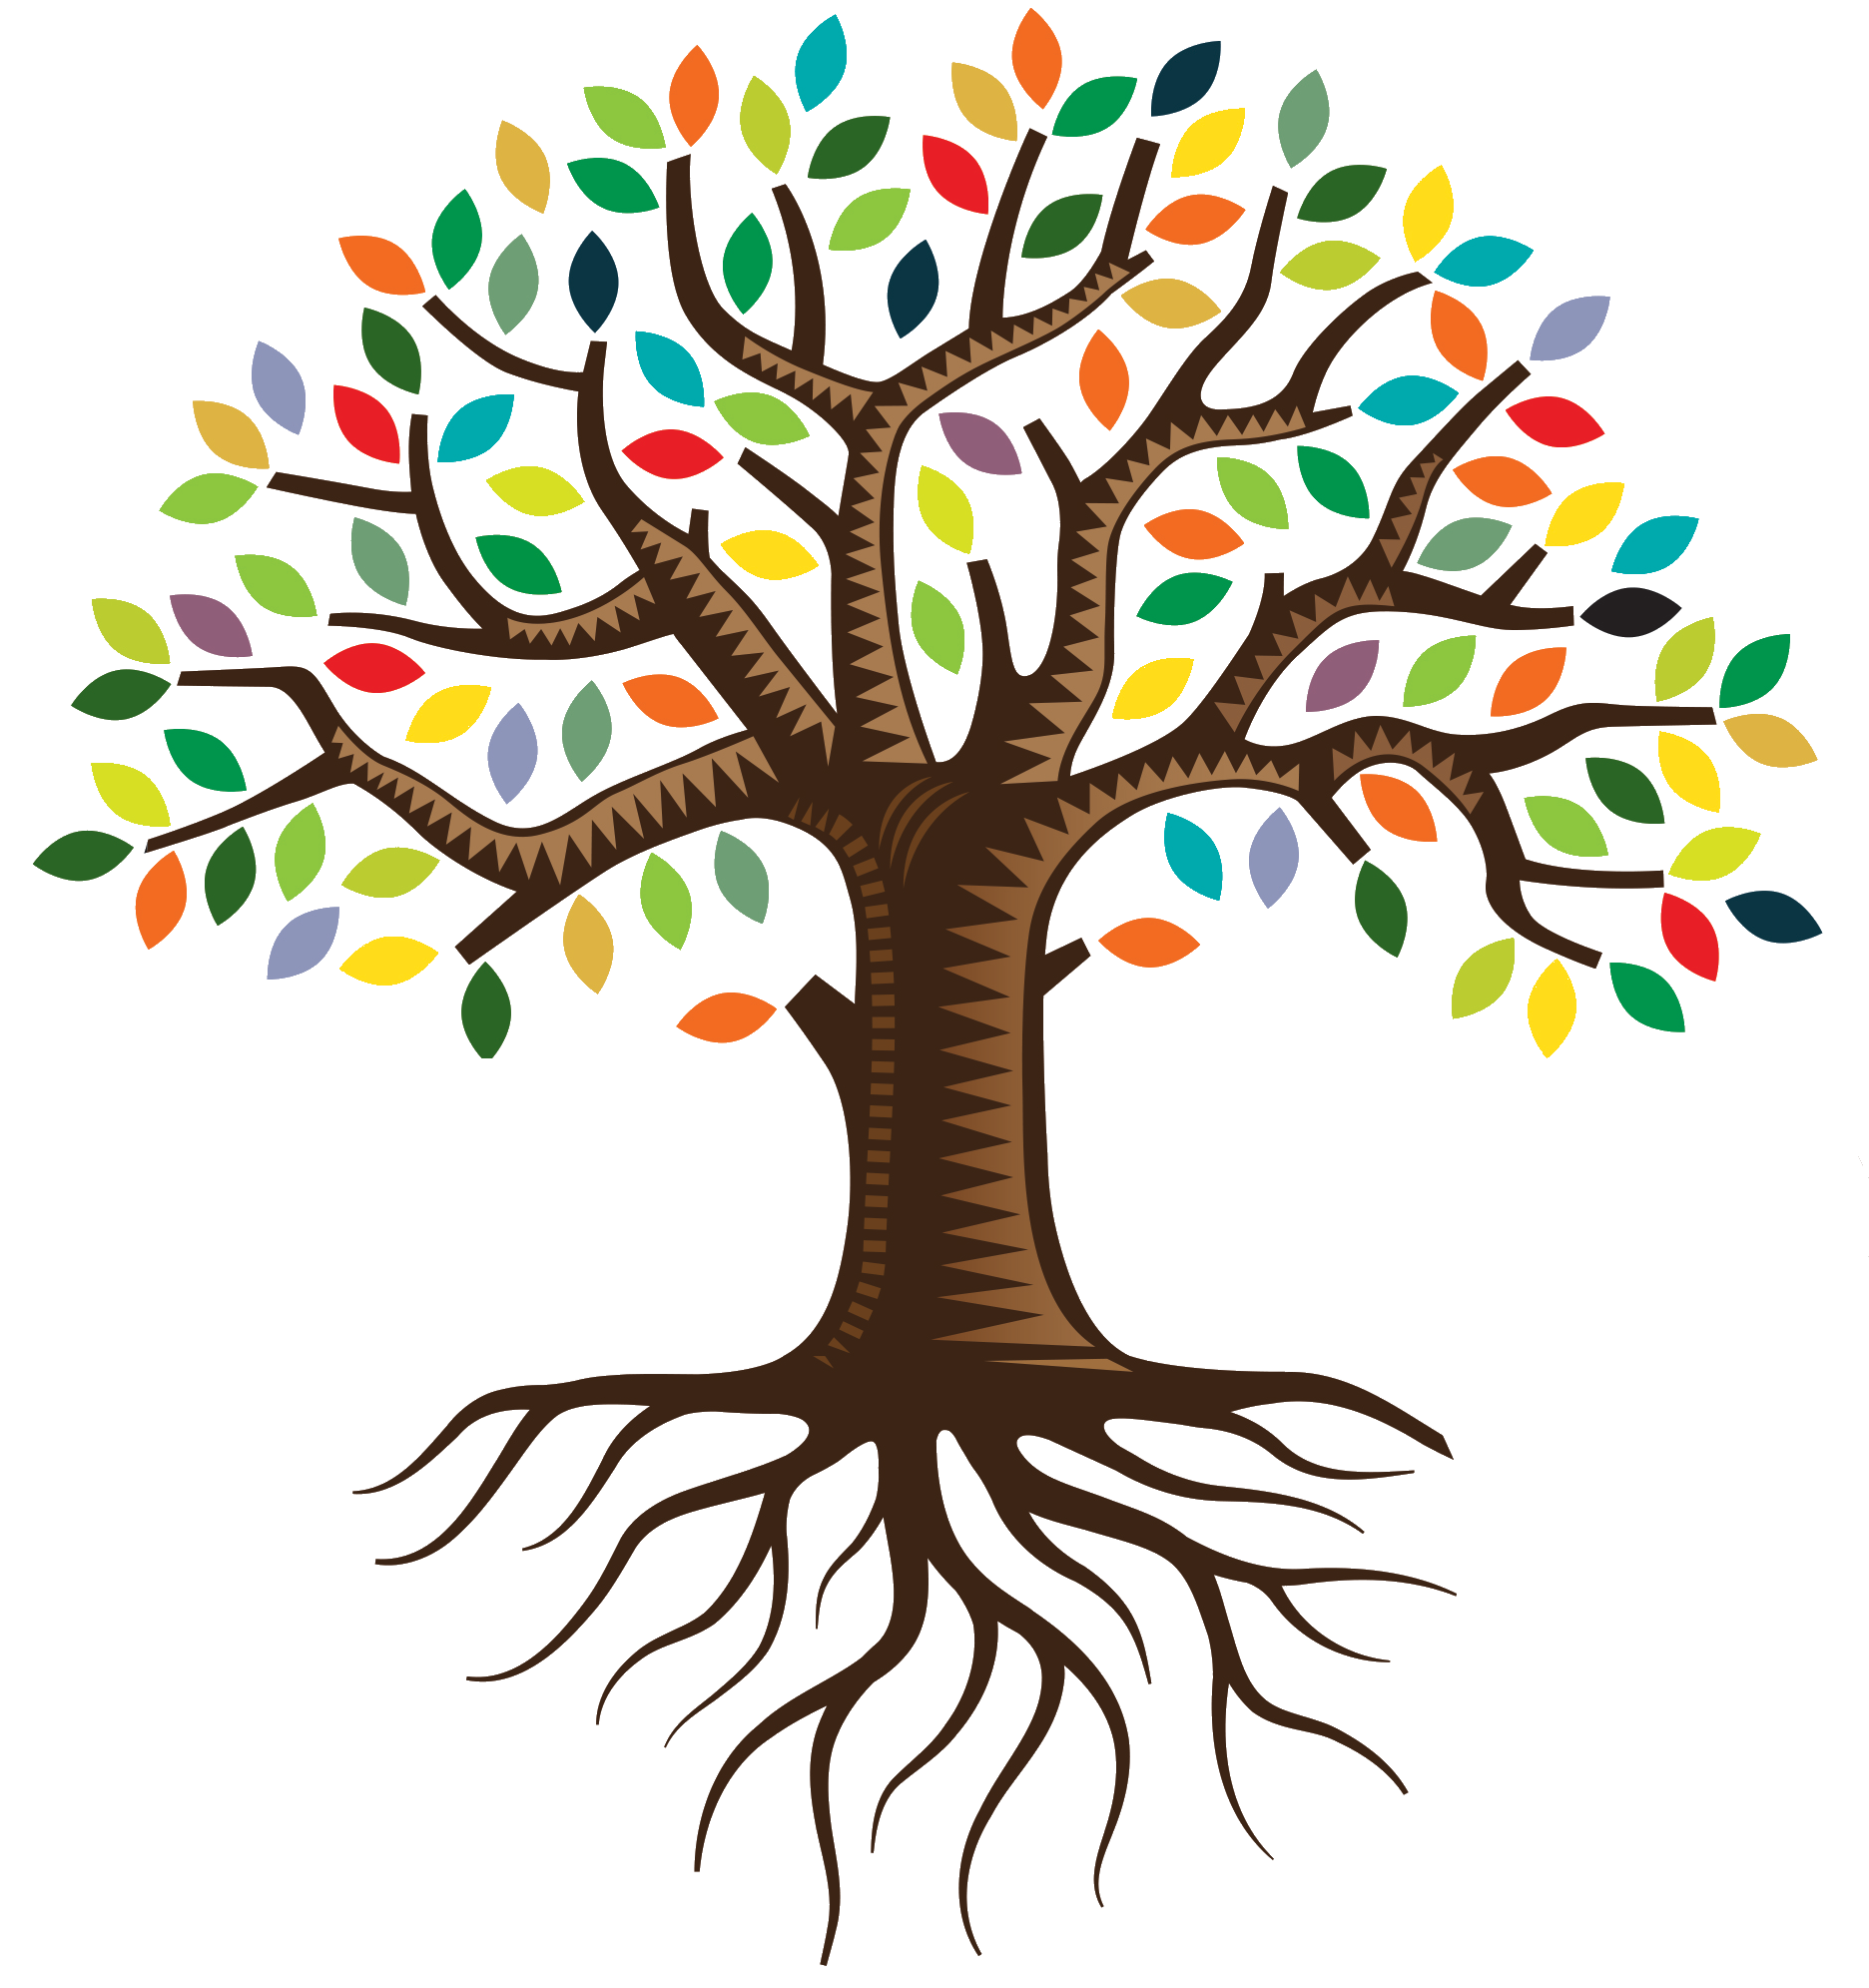 Clip art tree of life clipart images gallery for free download.